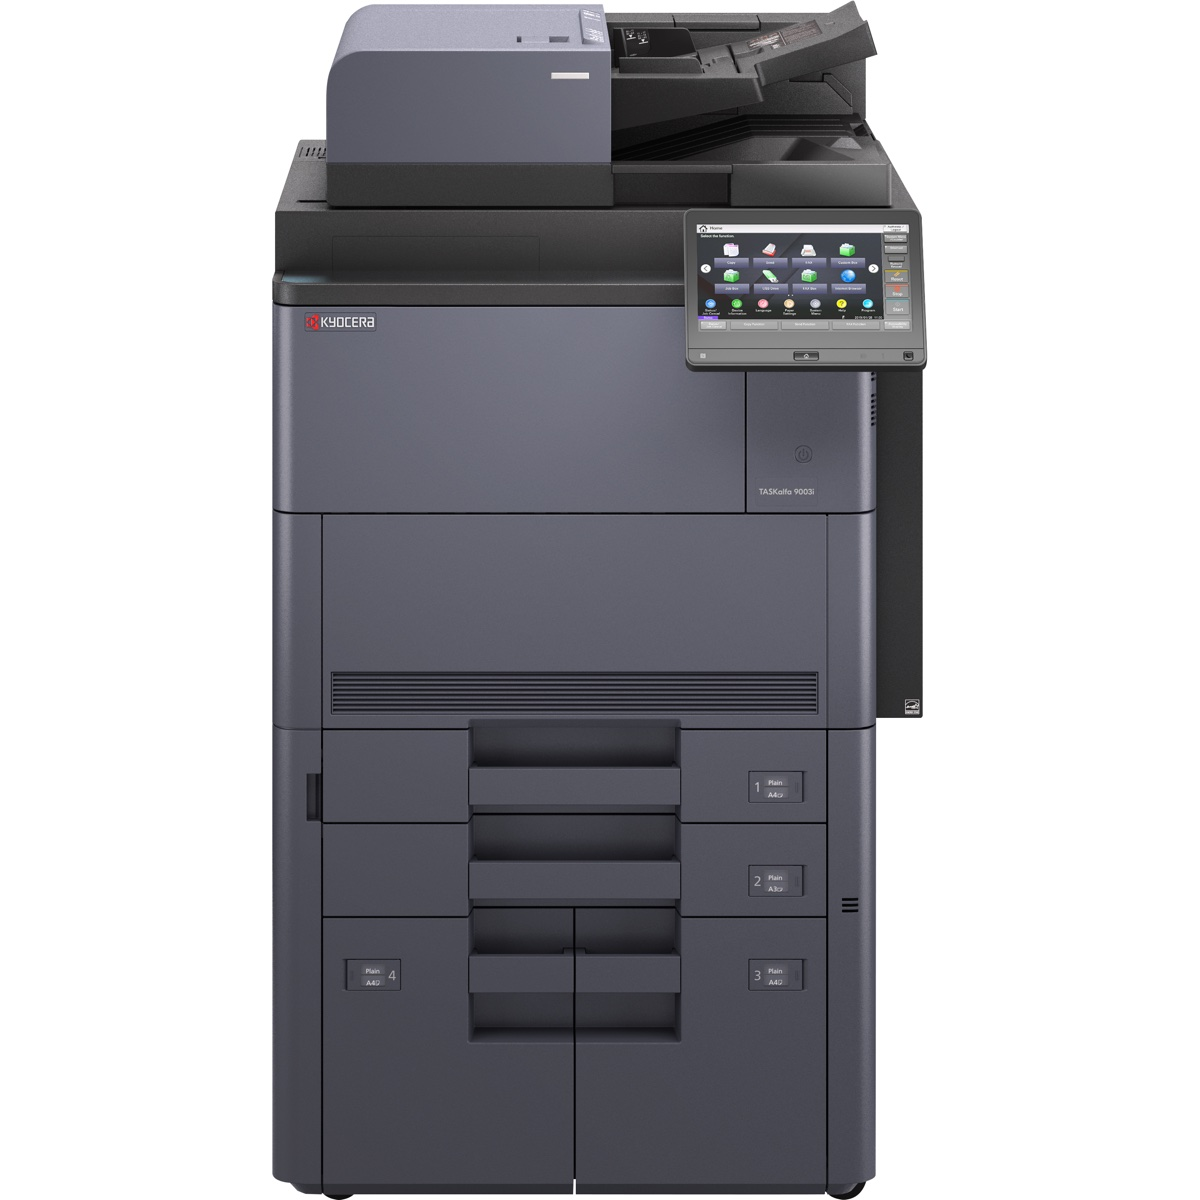 Kyocera Copiers:  The Kyocera TASKalfa 9003i Copier